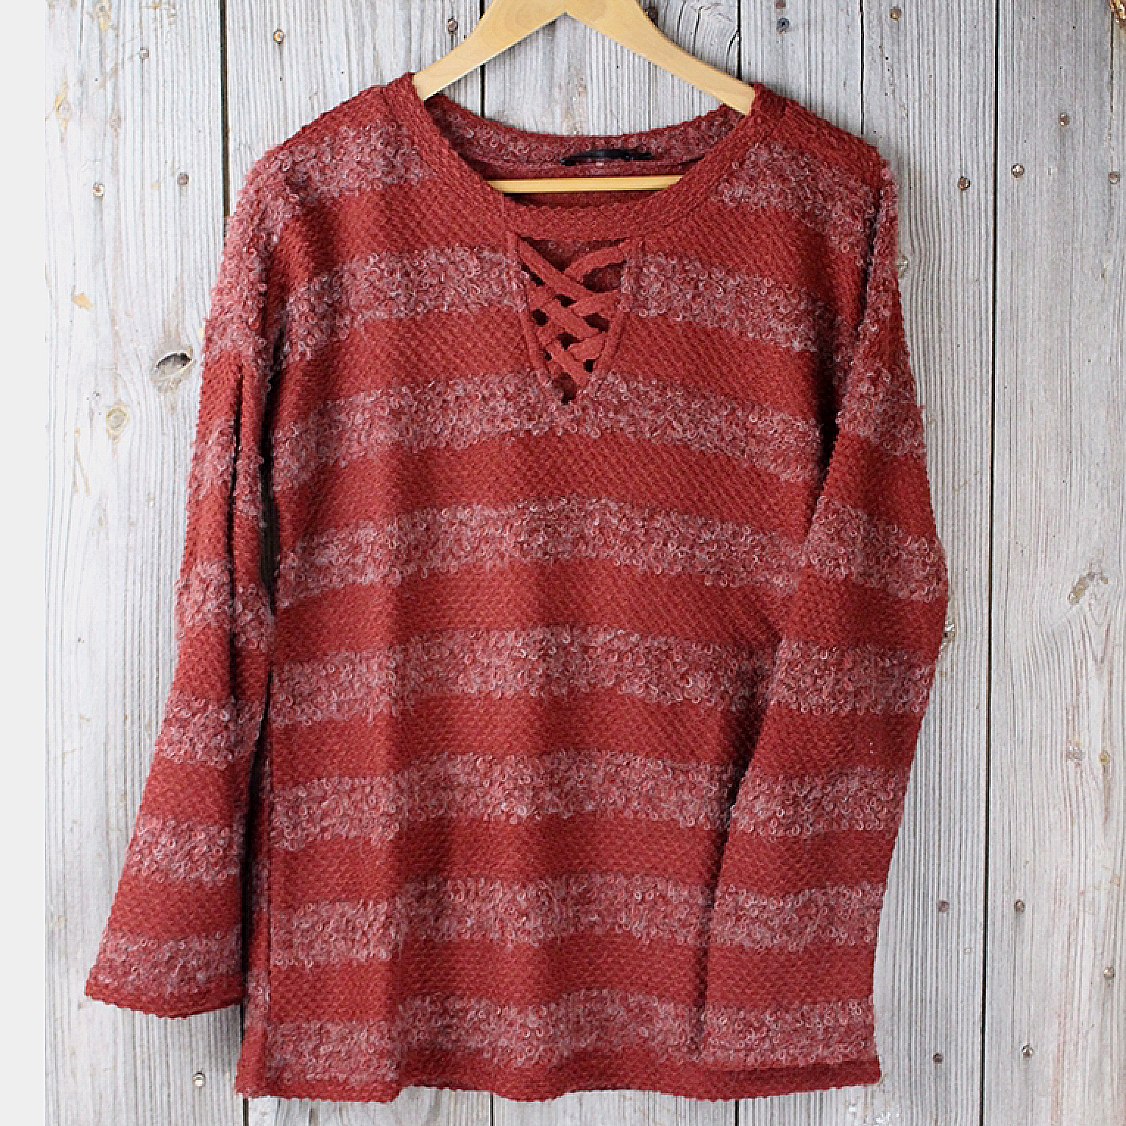 Boucle Sweater with Criss Cross Front